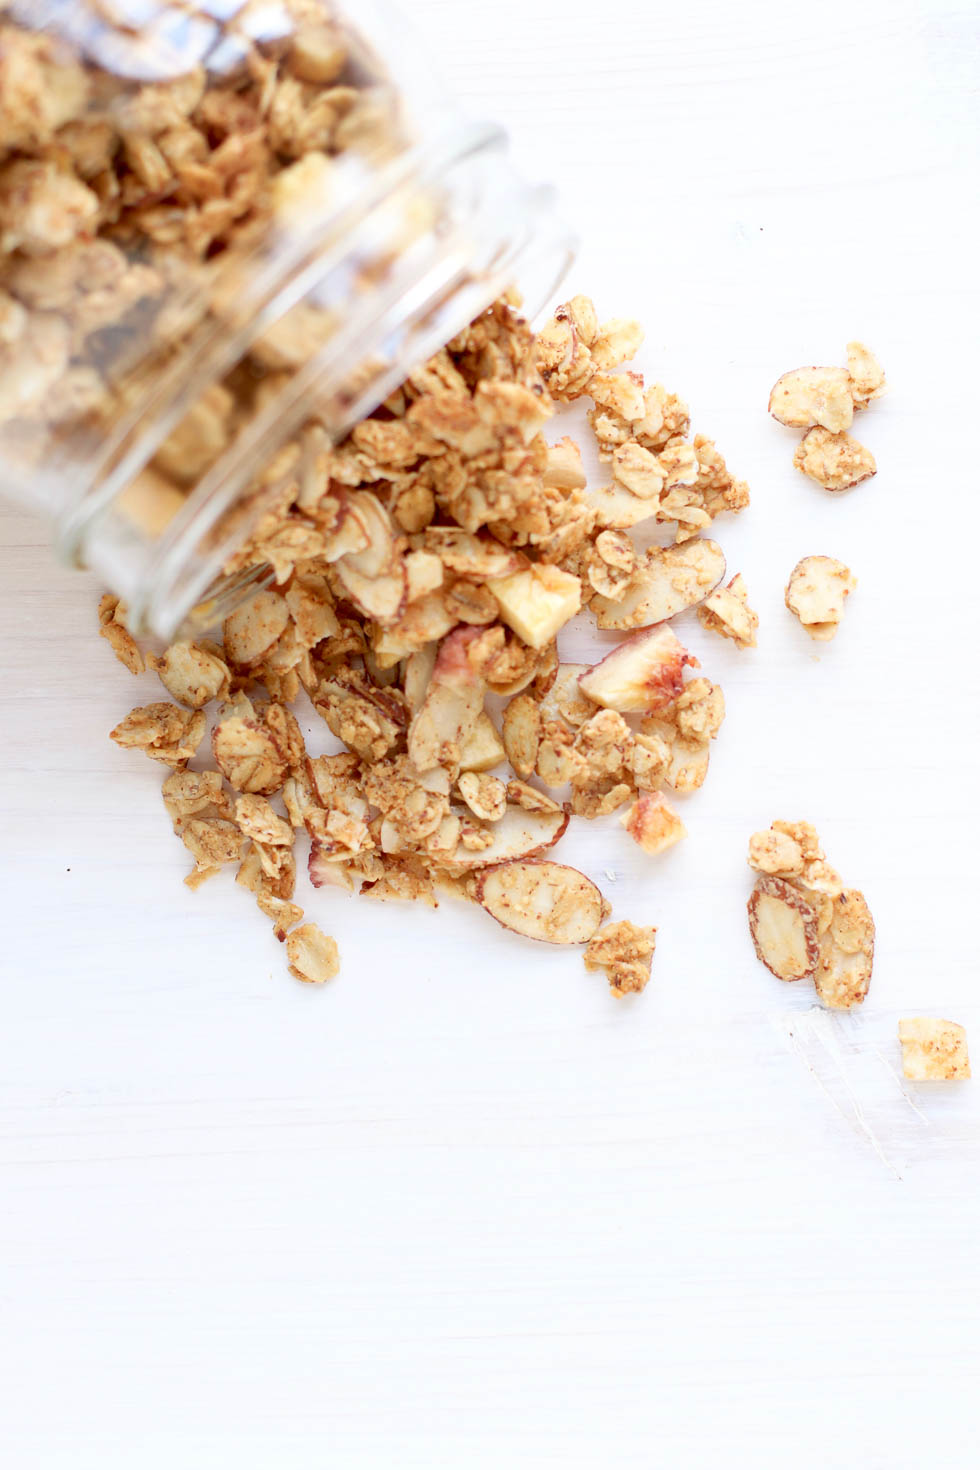 Homemade Peach Almond Granola Recipe